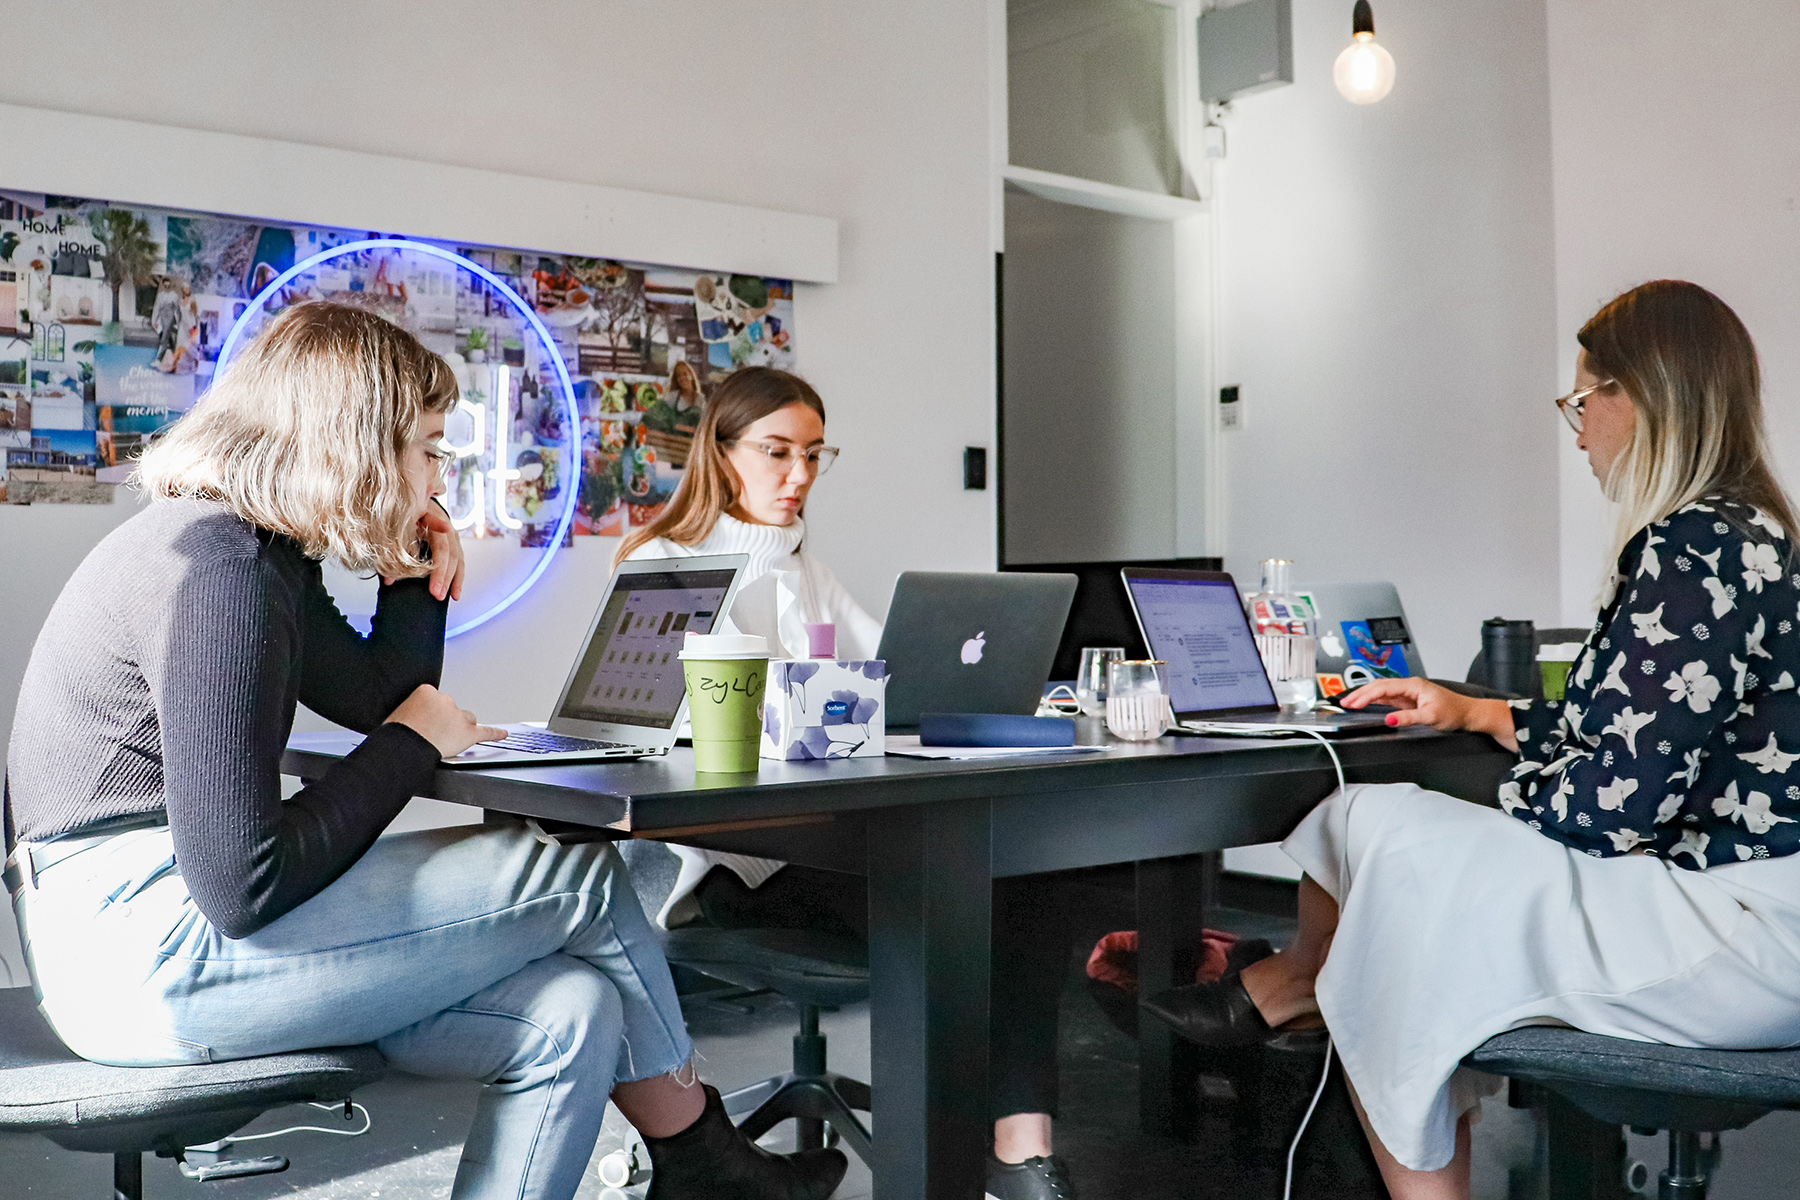 Three women at a coworking space